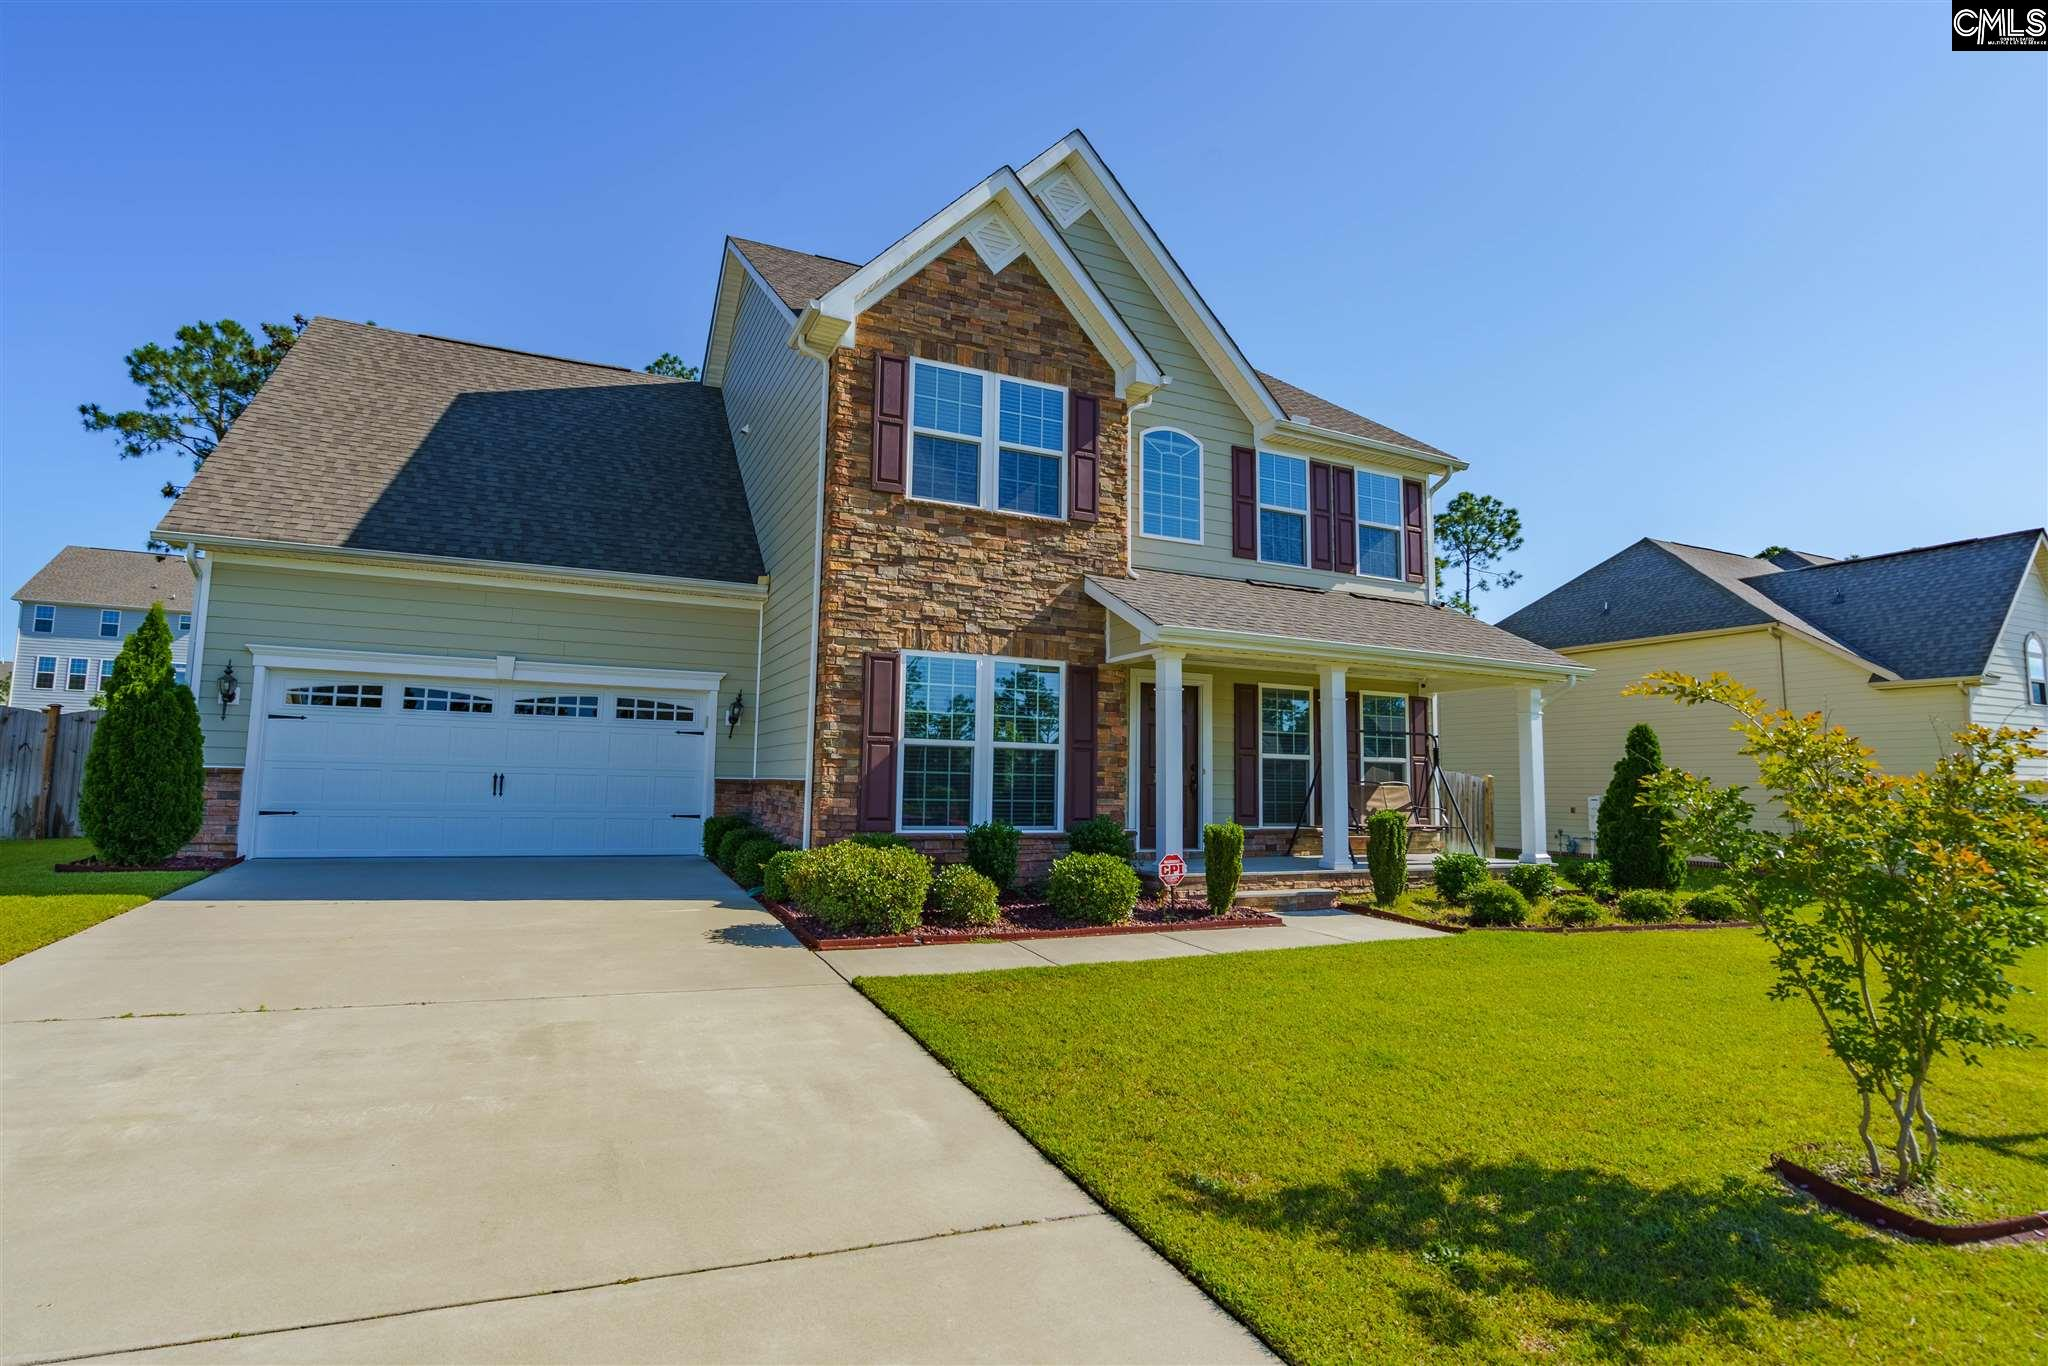 Woodcreek Farms Neighborhood Homes for Sale in Northeast Columbia SC